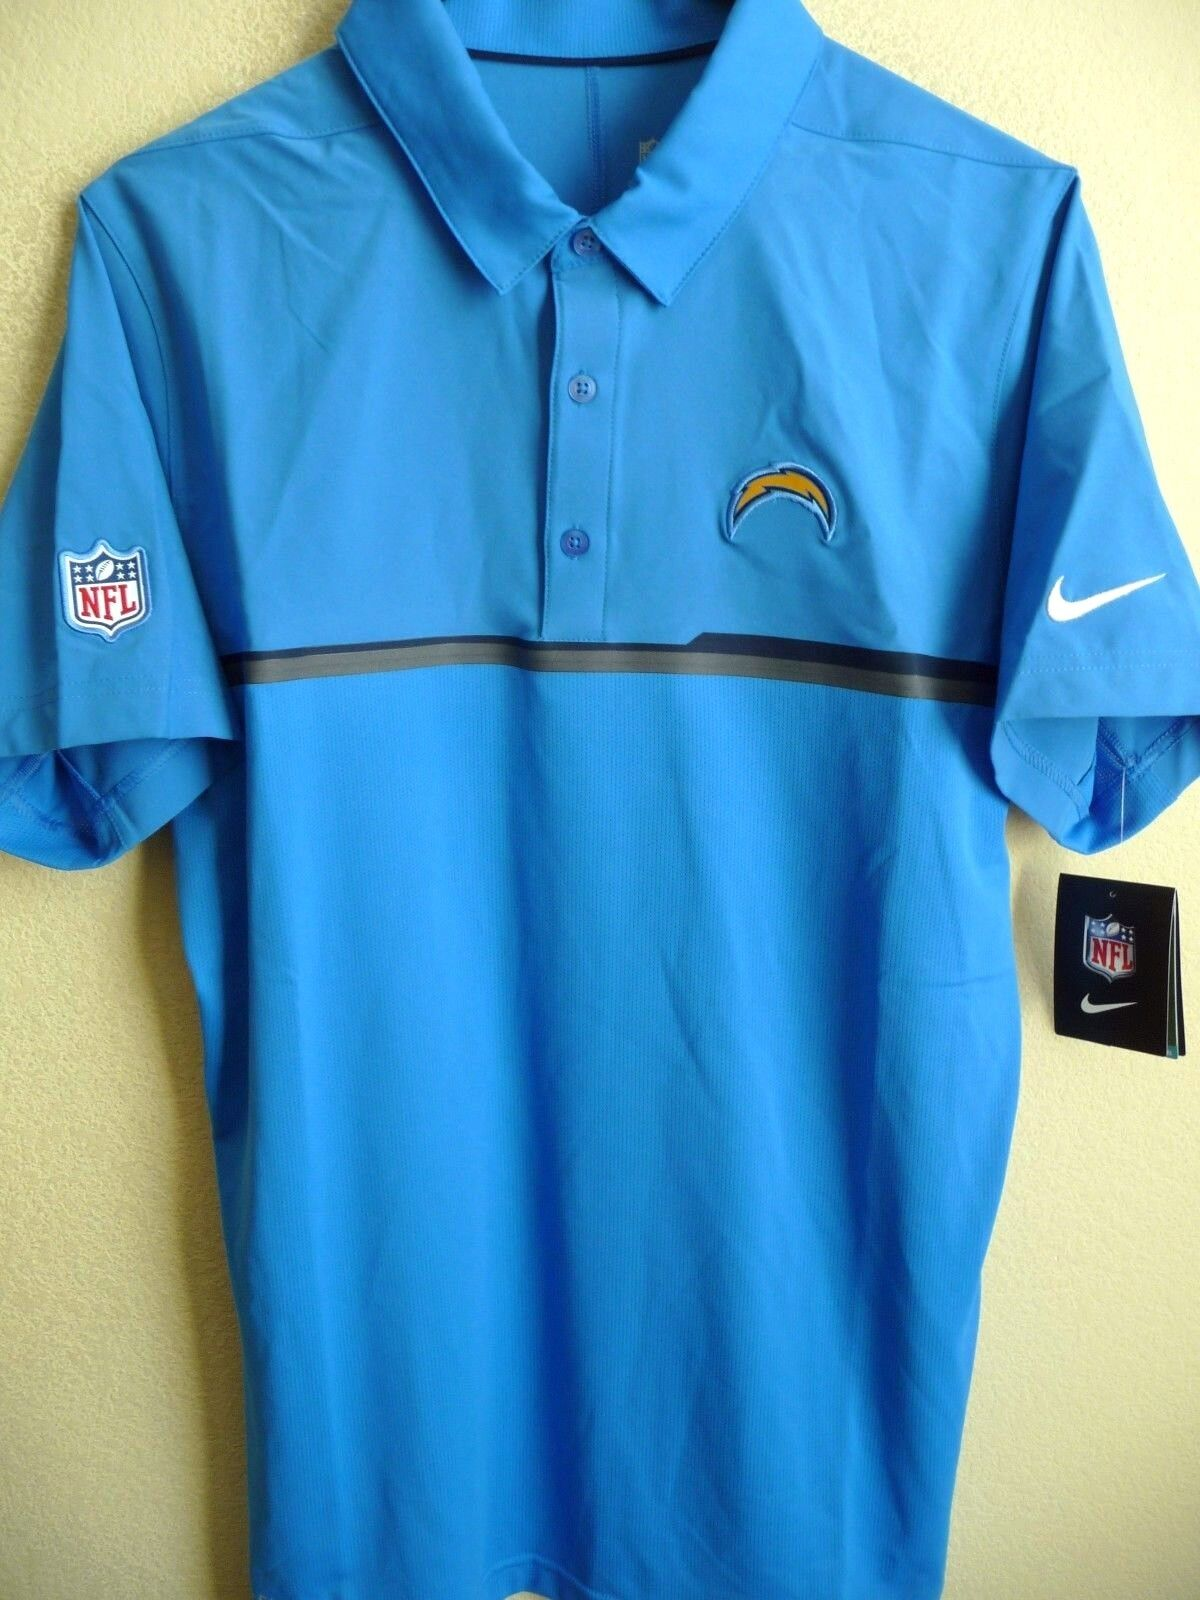 Nfl Nike Los Angeles Chargers Football Polyesterspandex Polo Shirt